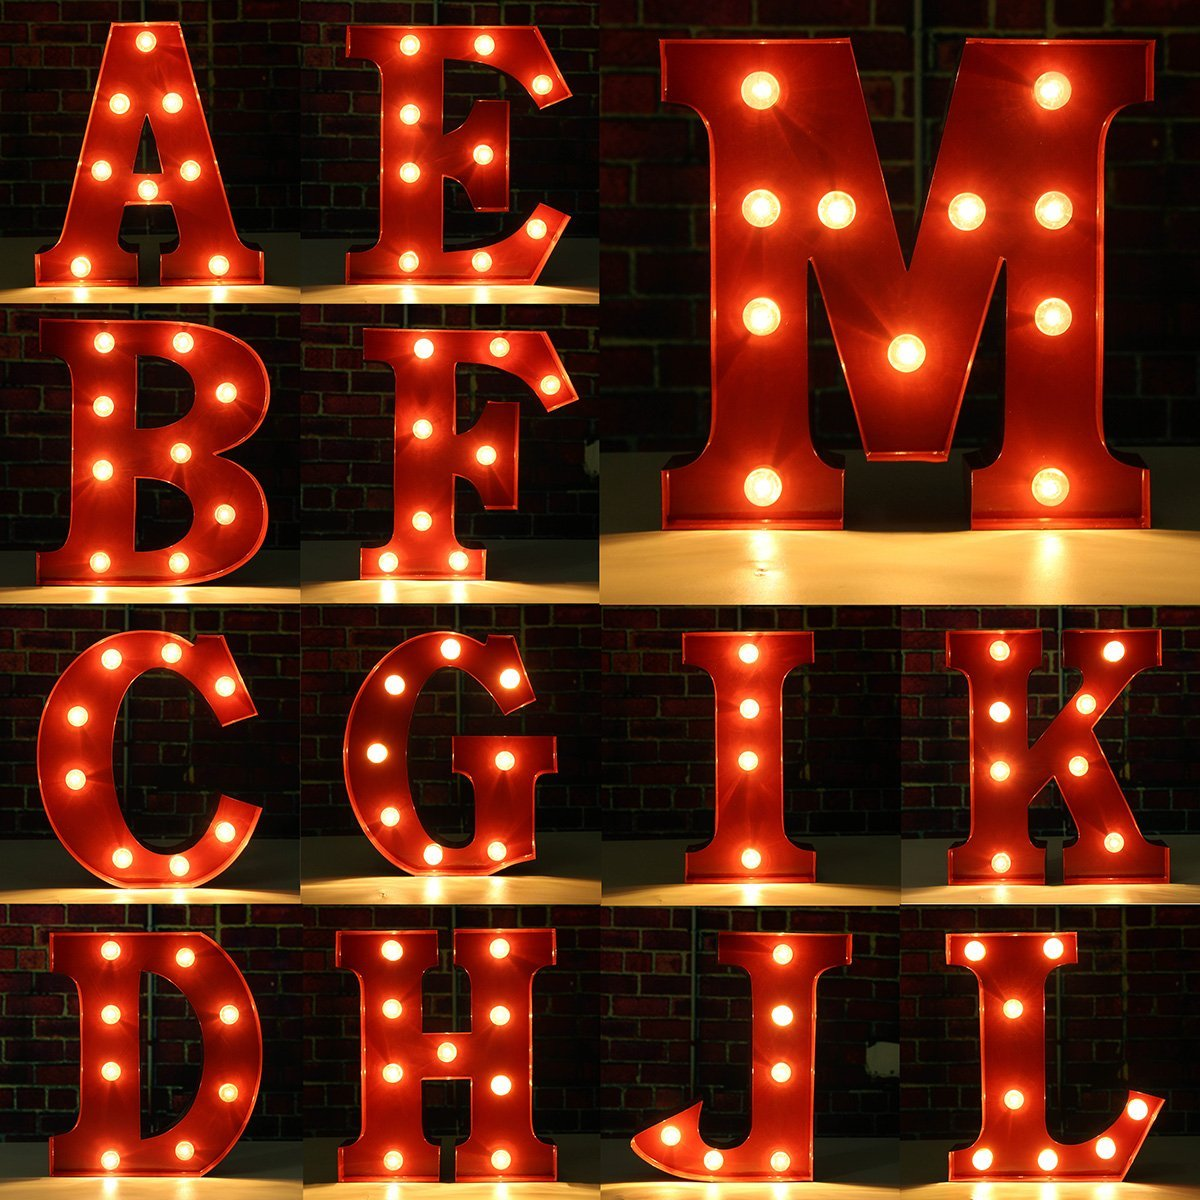 SOLMORE 23CM x 5.5CM LED Letter Light DIY Vintage Metal Sign Carnival Wall Marquee Lights Decoration M 7